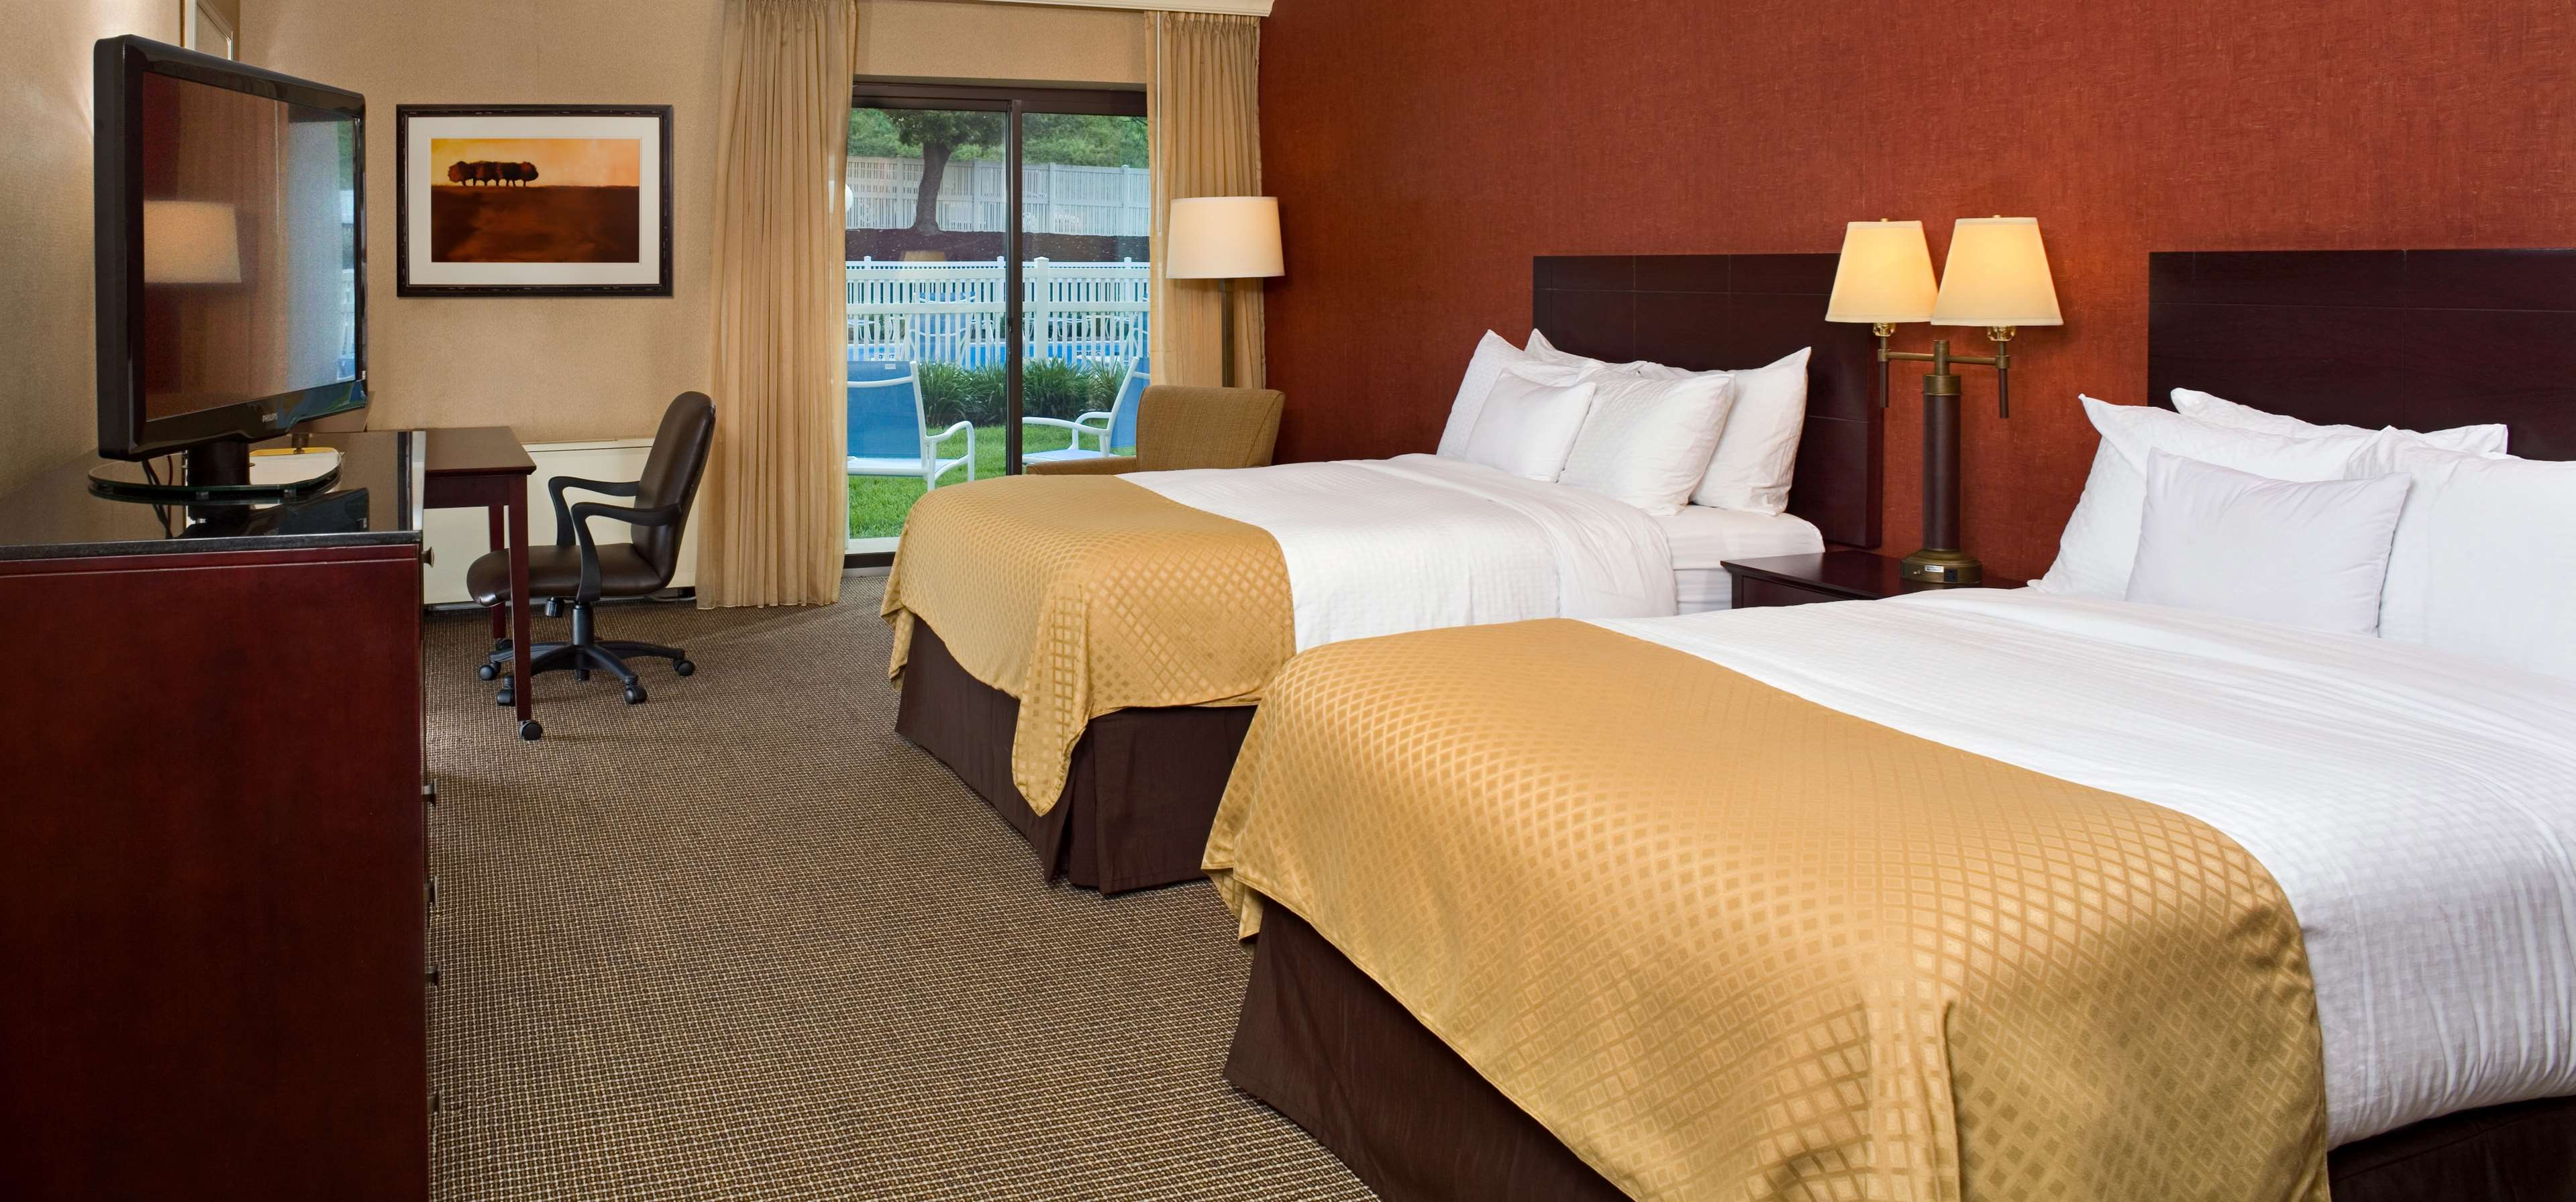 DoubleTree by Hilton Hotel Pittsburgh - Meadow Lands image 12